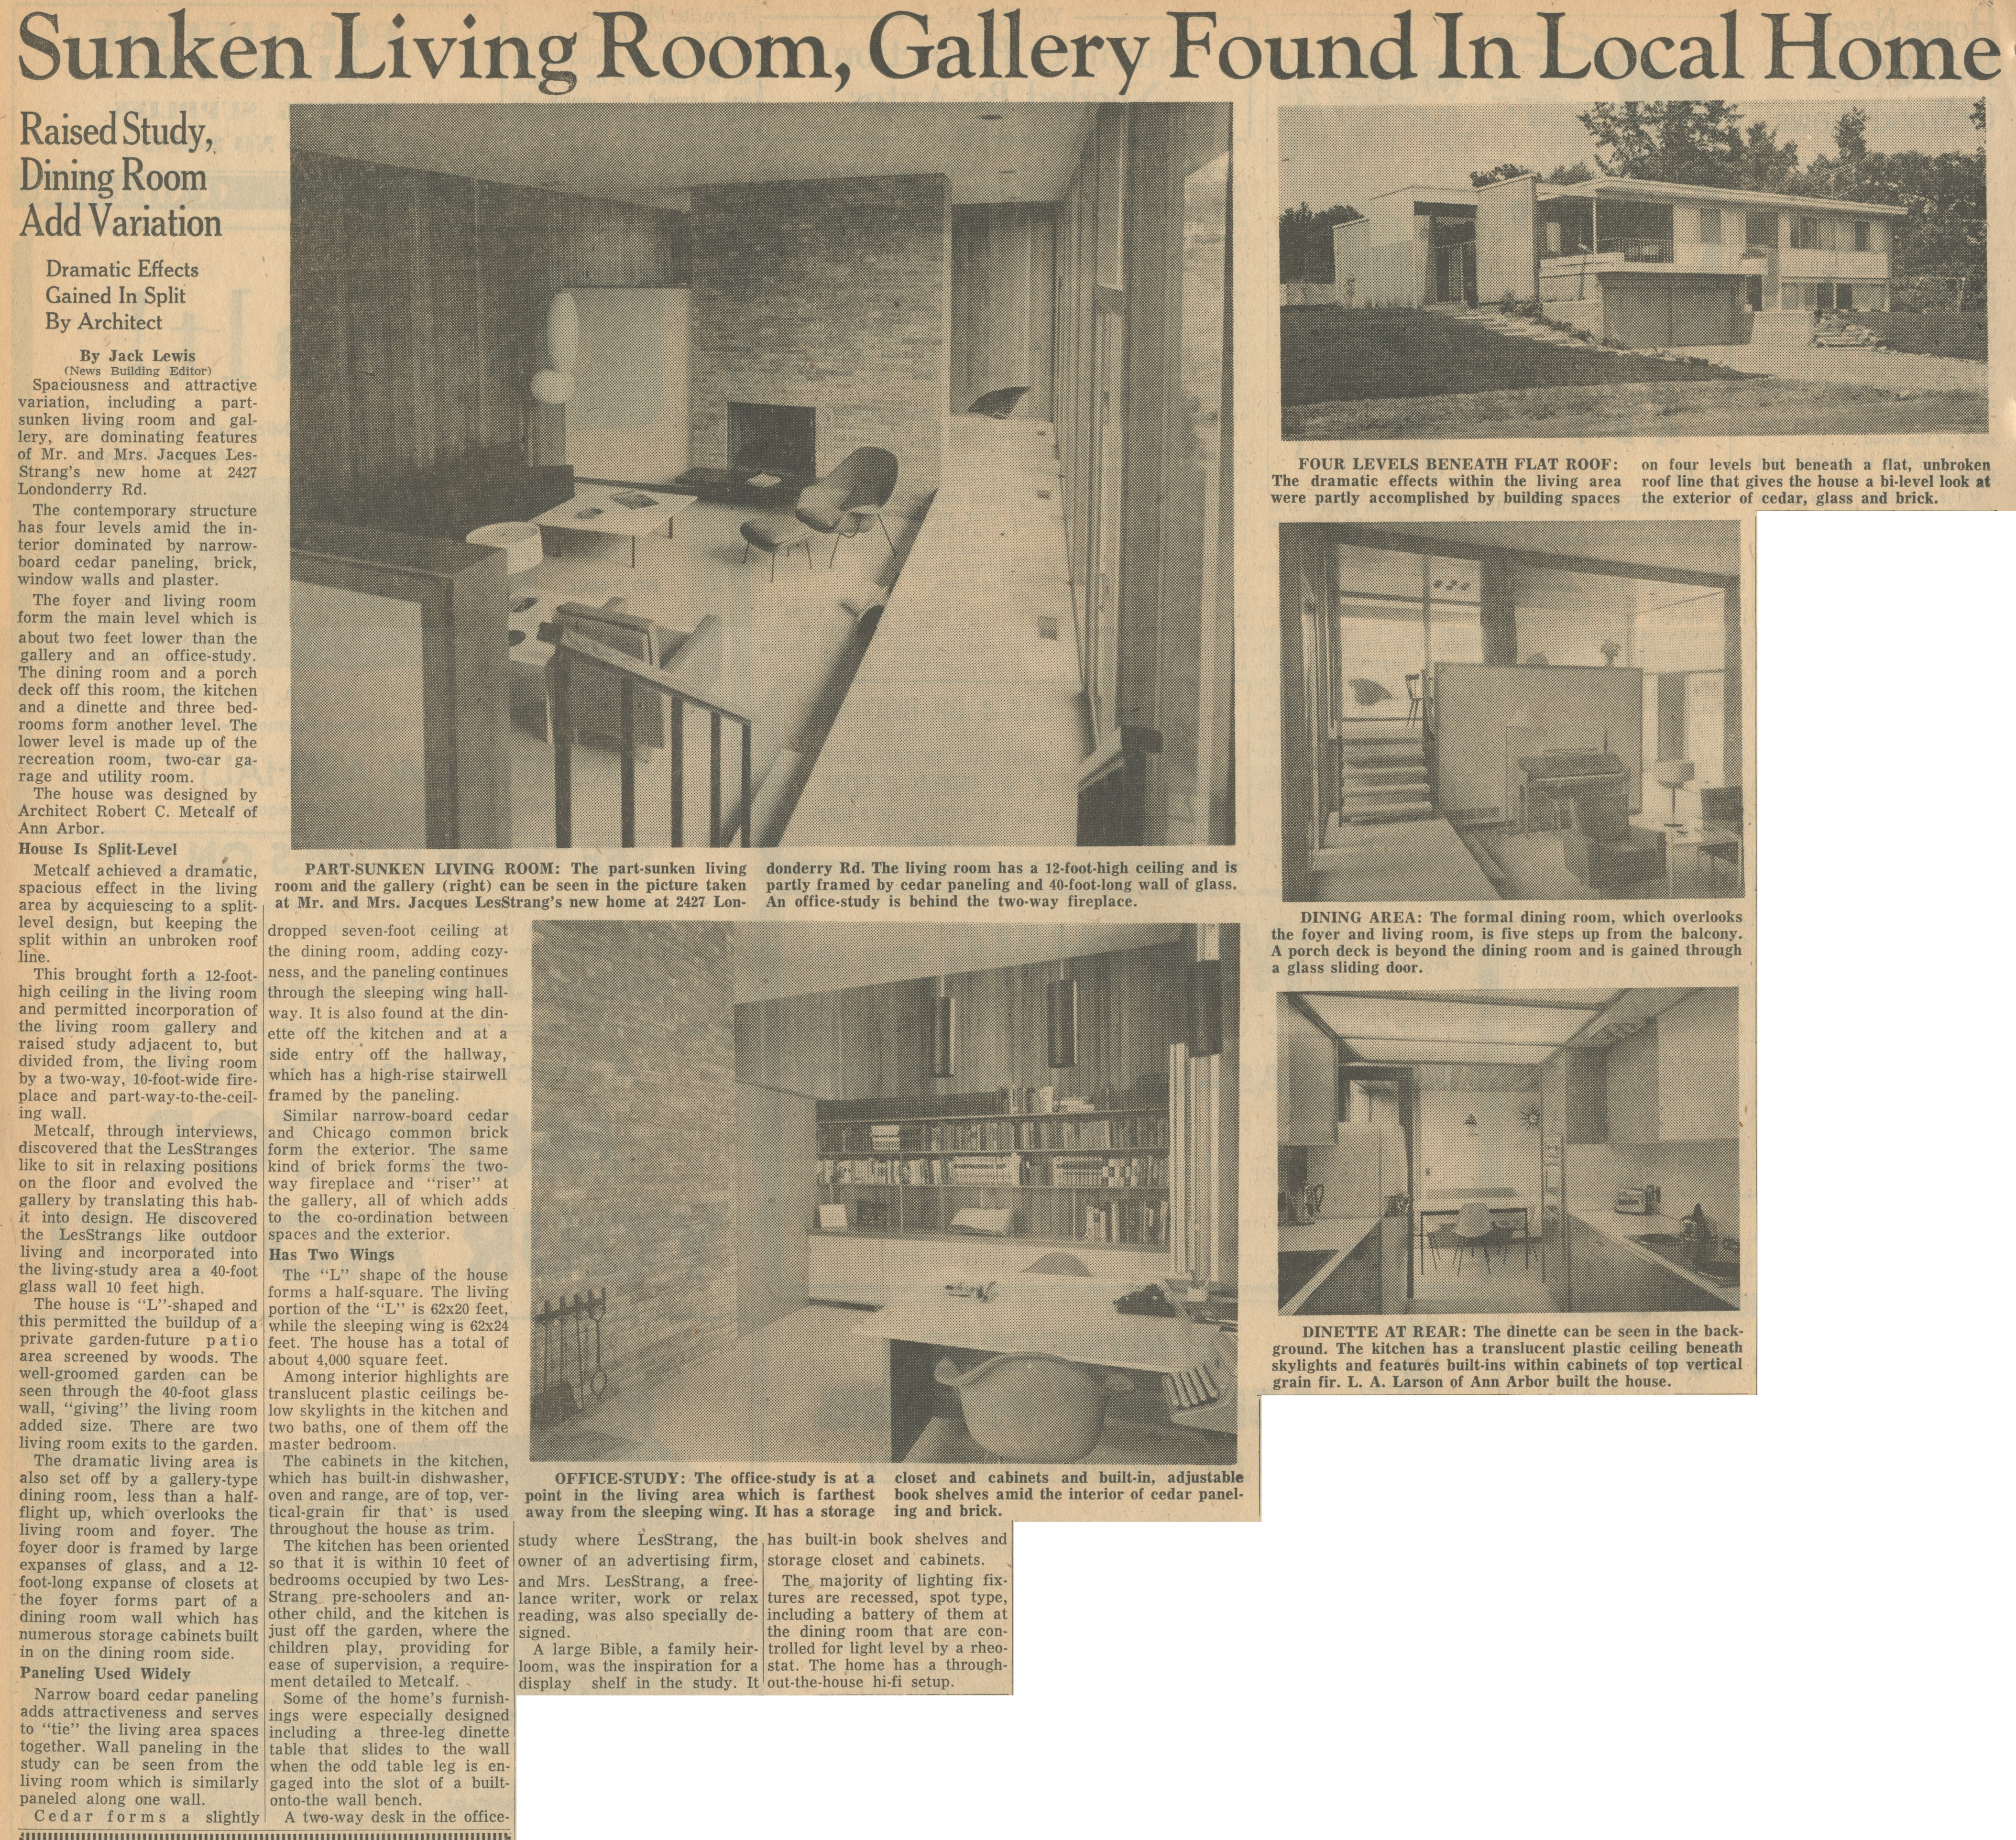 Sunken Living Room, Gallery Found In Local Home image